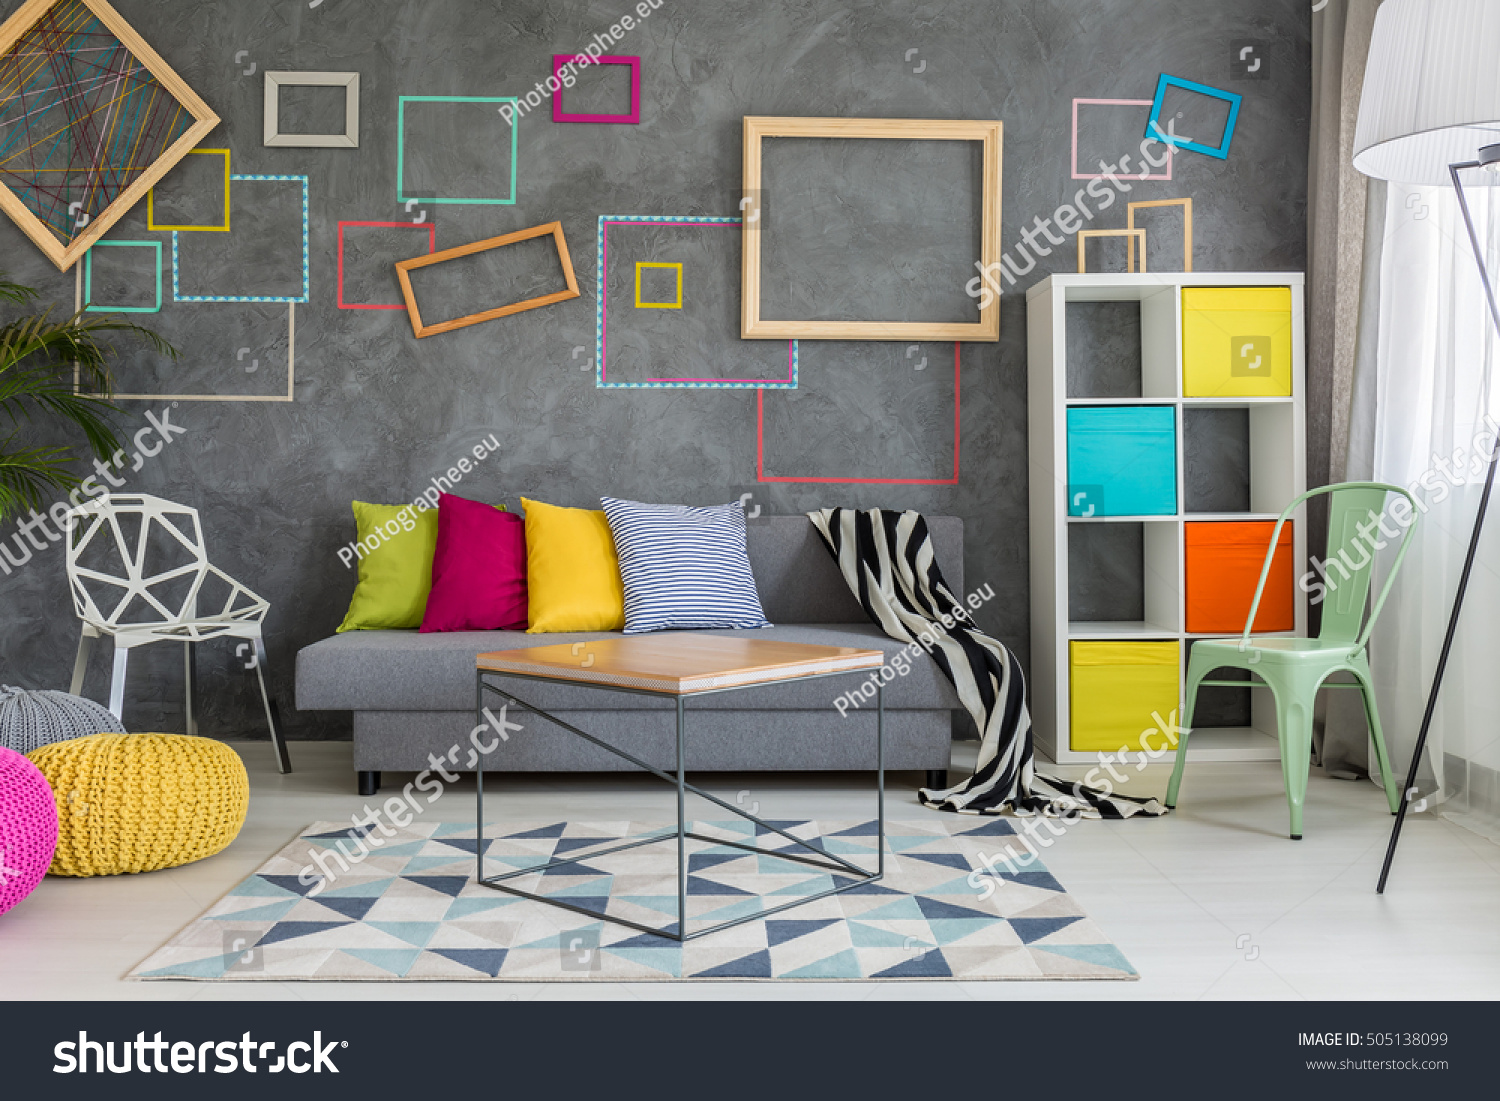 Colorful Wall Decor Spacious Apartment Grey Colorful Wall Decor Stock Photo 505138099